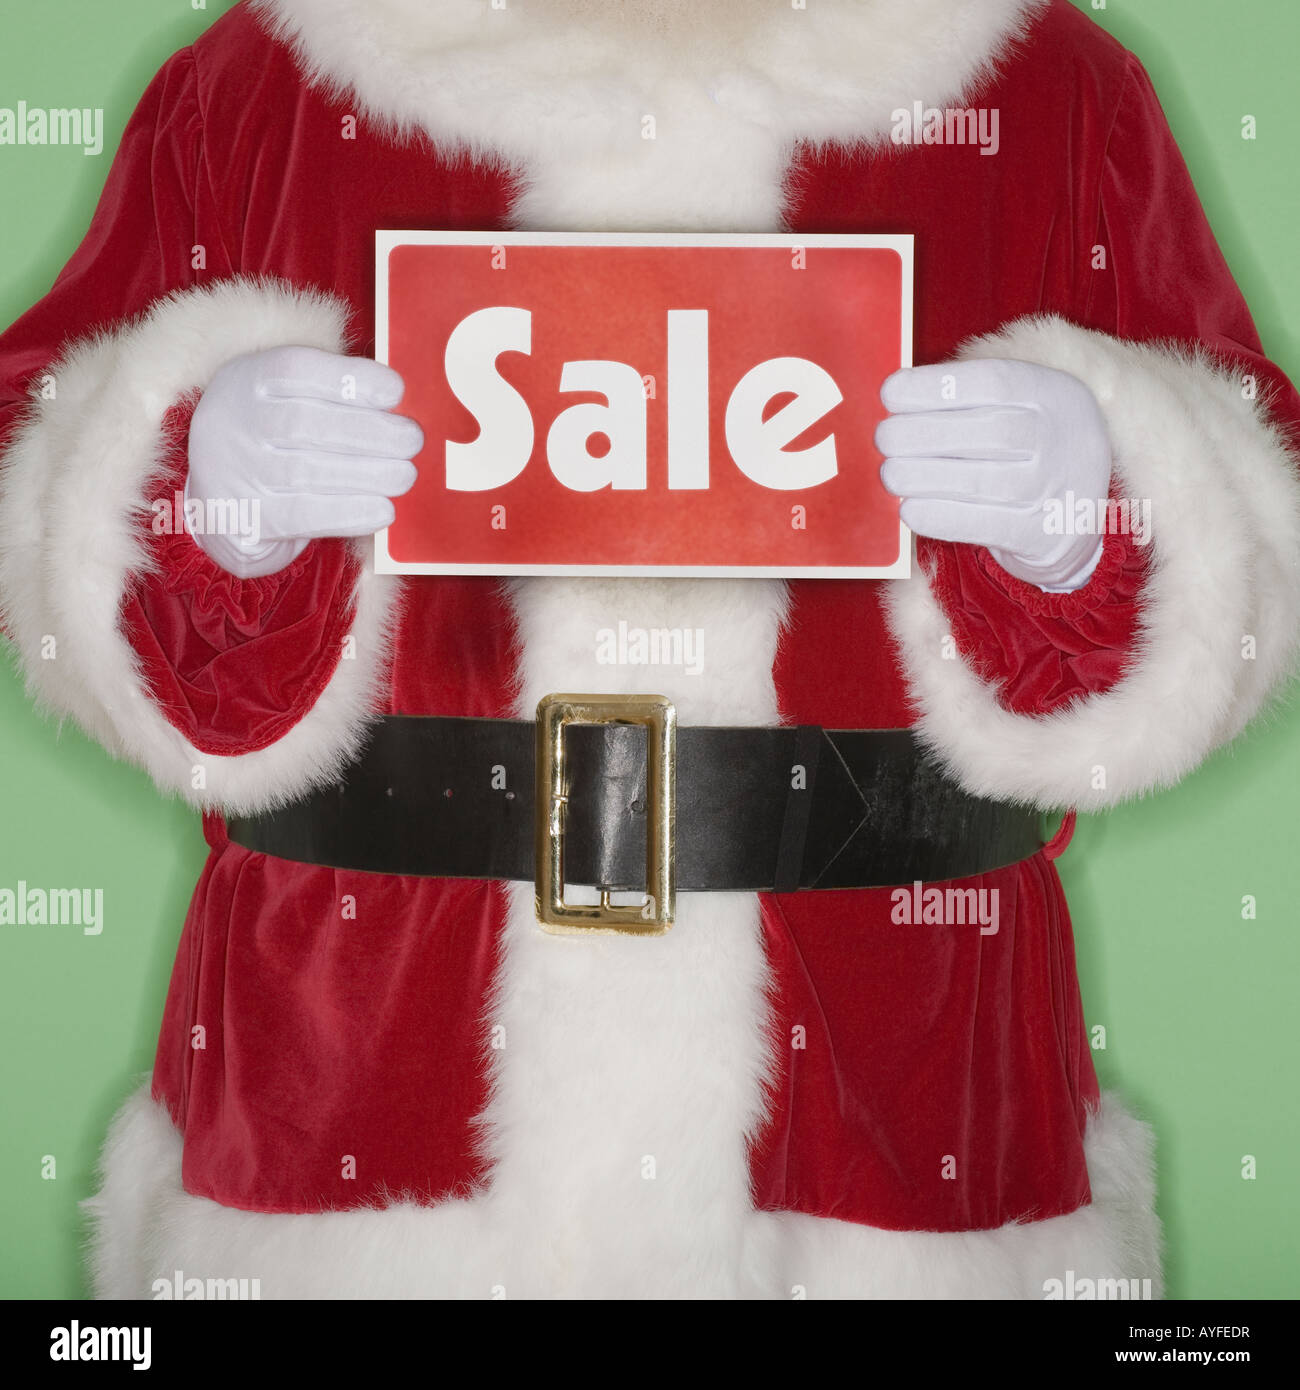 Santa Claus holding Sale sign Photo Stock